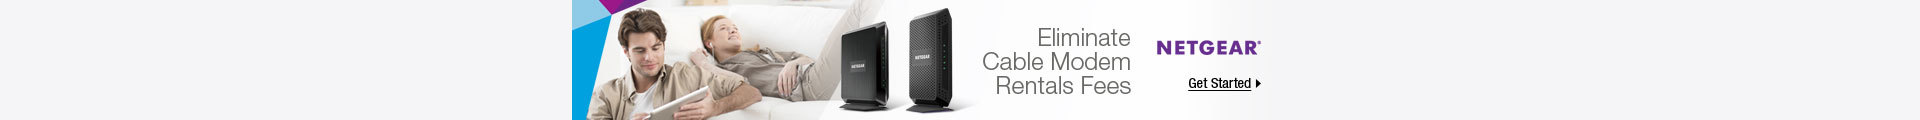 Eliminate Cable Modem Rental Fees